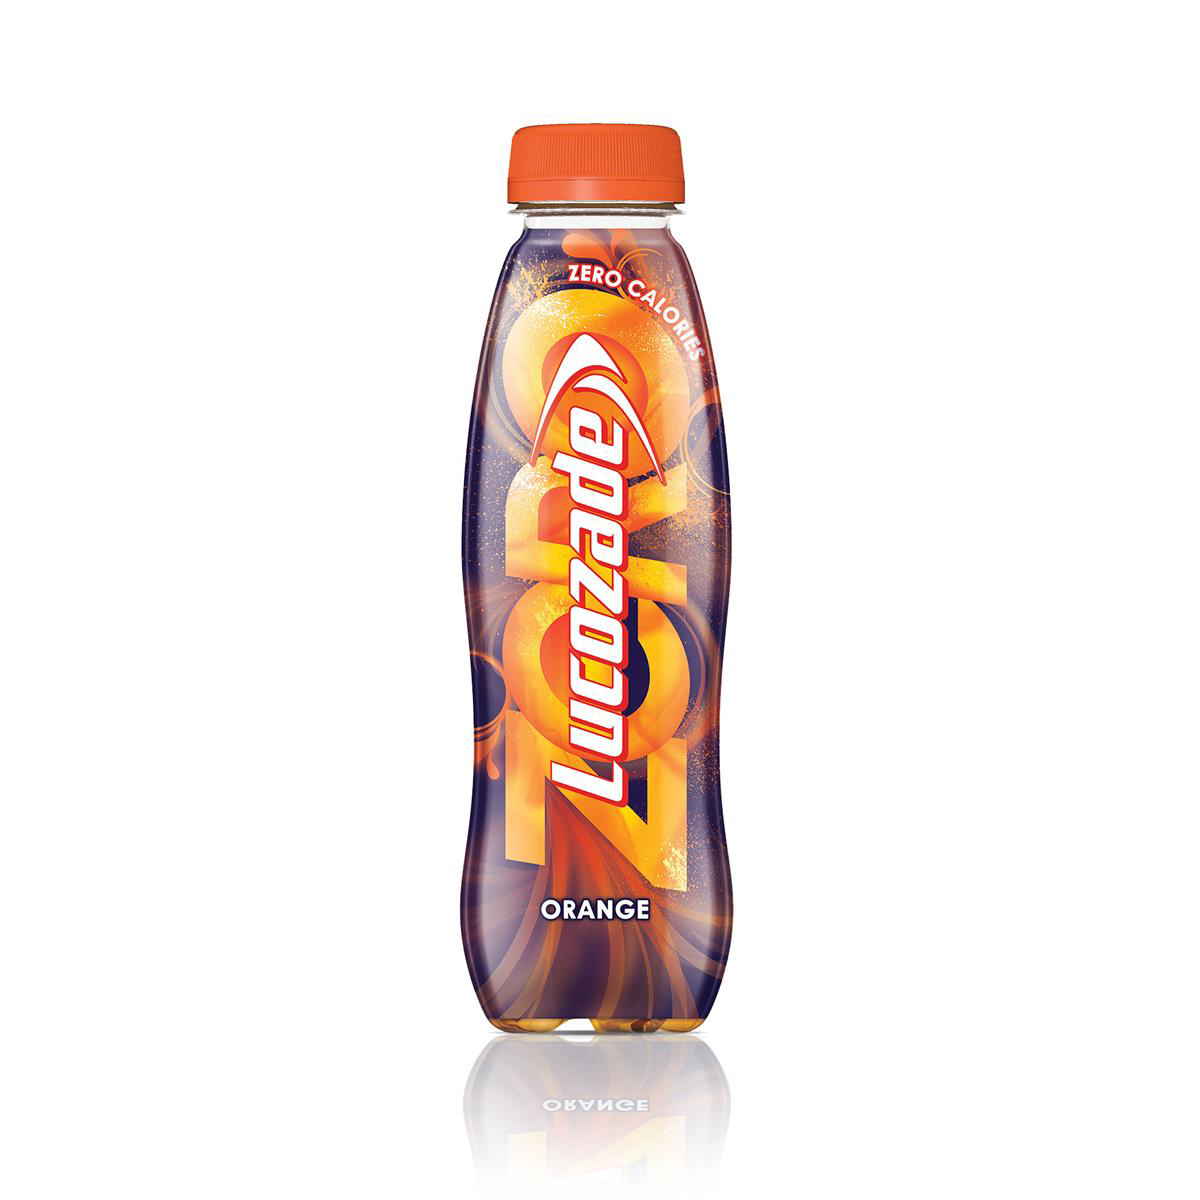 Lucozade Zero Orange Low Calorie Soft Drink Bottle Plastic 380ml Ref 96716 Pack 24